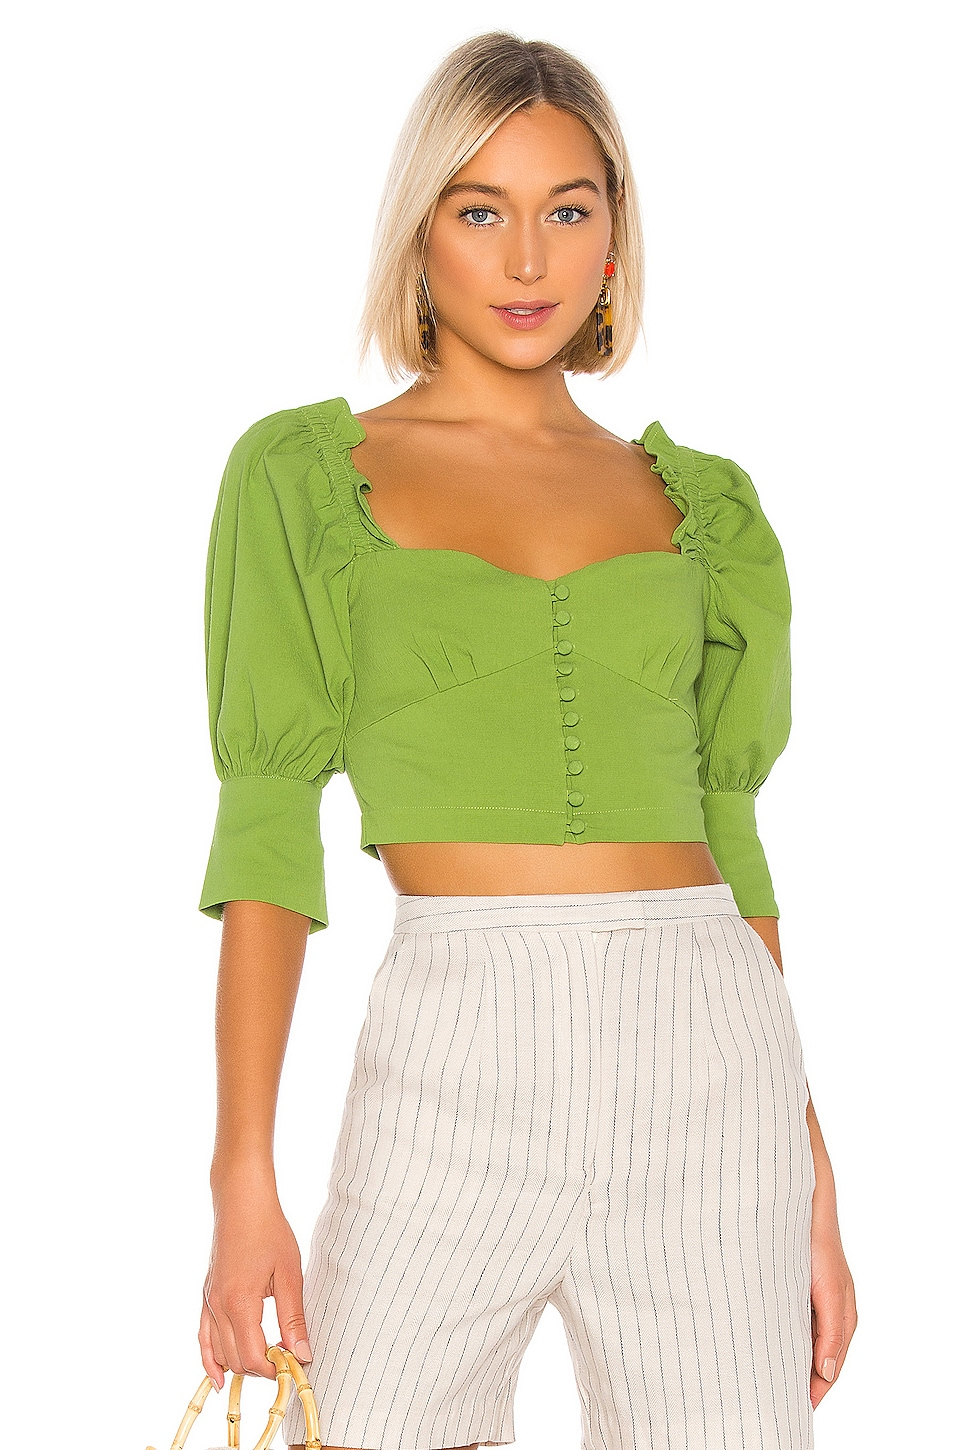 L'Academie The Babette Top in Moss